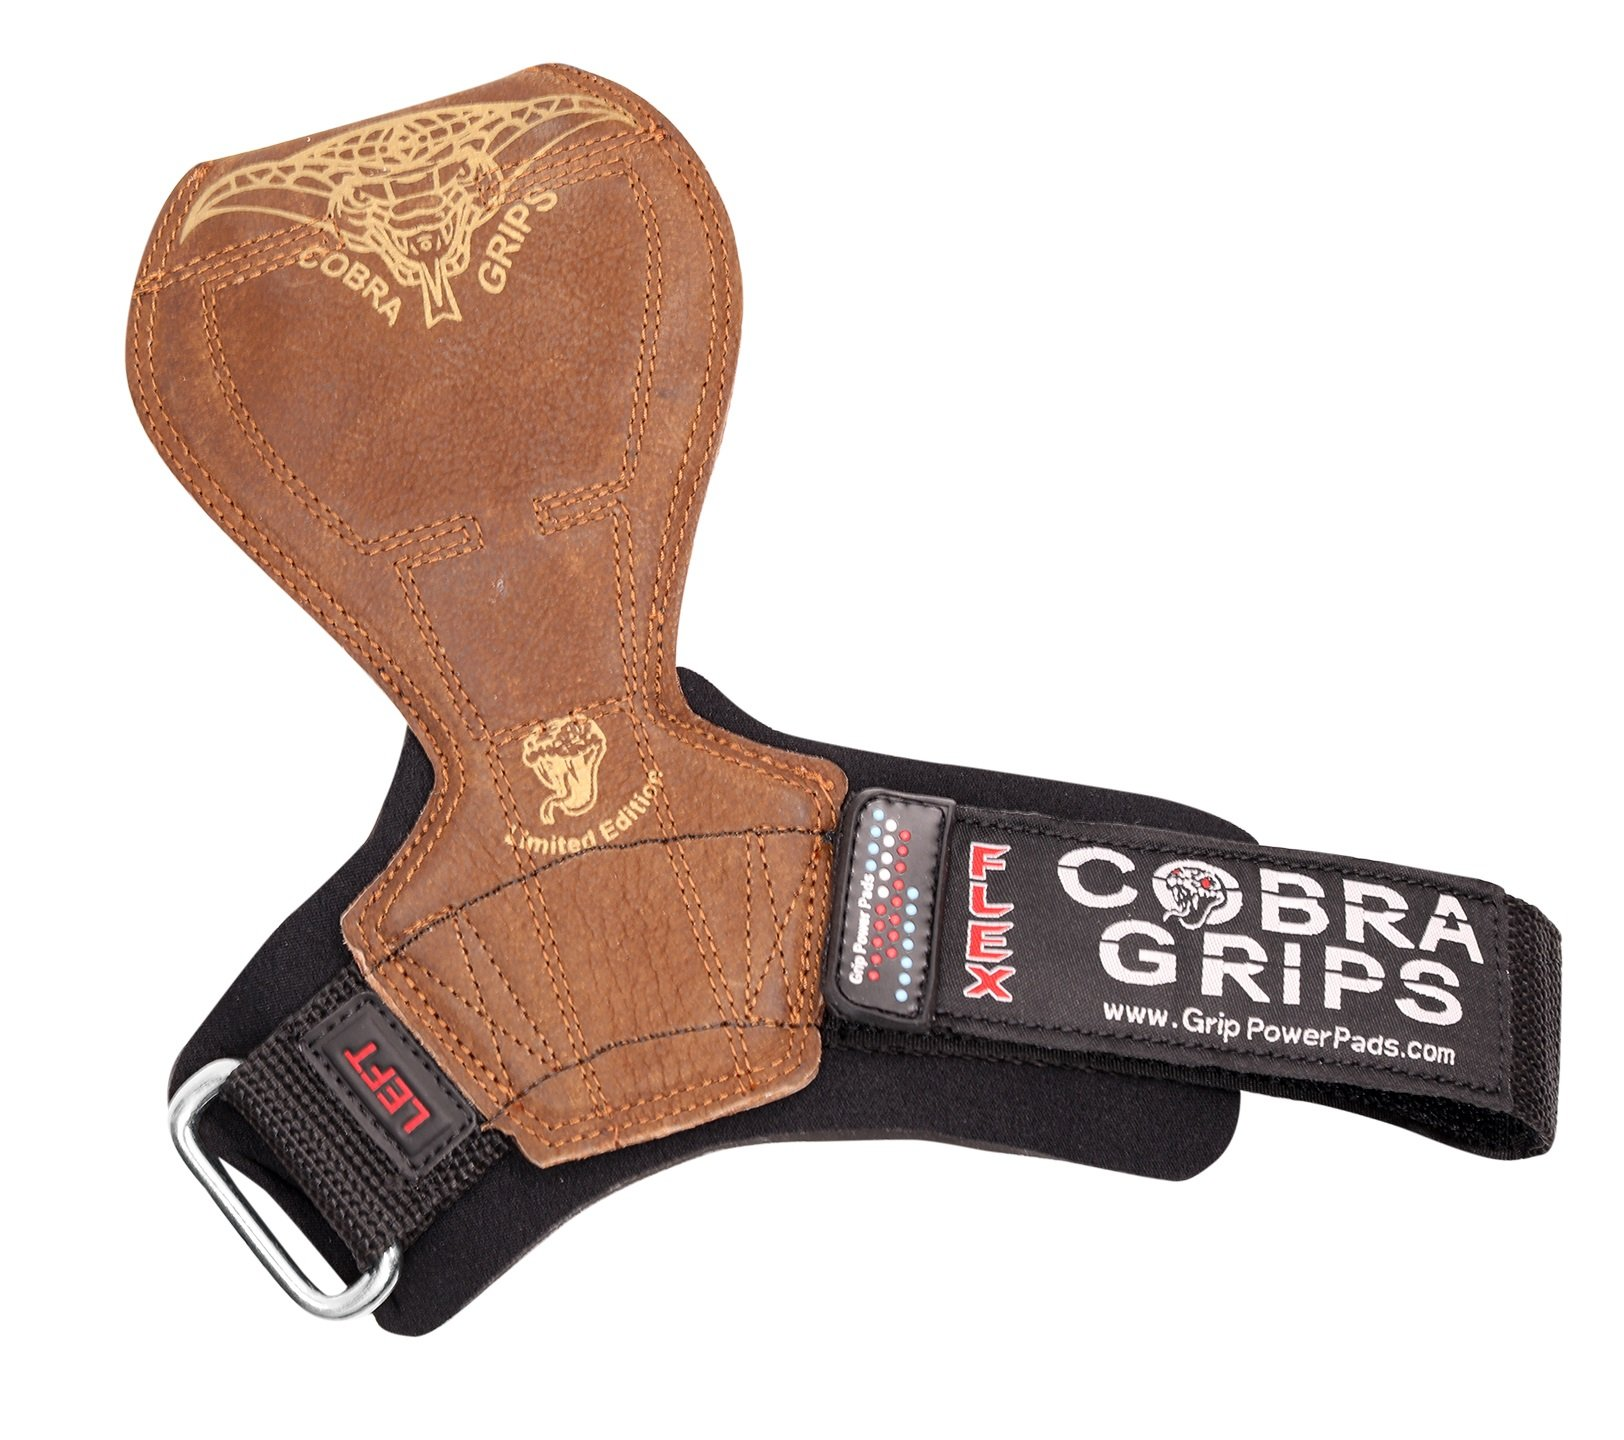 2018 Cobra Grips Flex Model Weight Lifting Gloves Heavy Duty Straps Alternative Power Lifting Hooks Best for Deadlifts with Padded Wrist Wrap Support Bodybuilding (Medium, Brown Leather) by Grip Power Pads (Image #2)